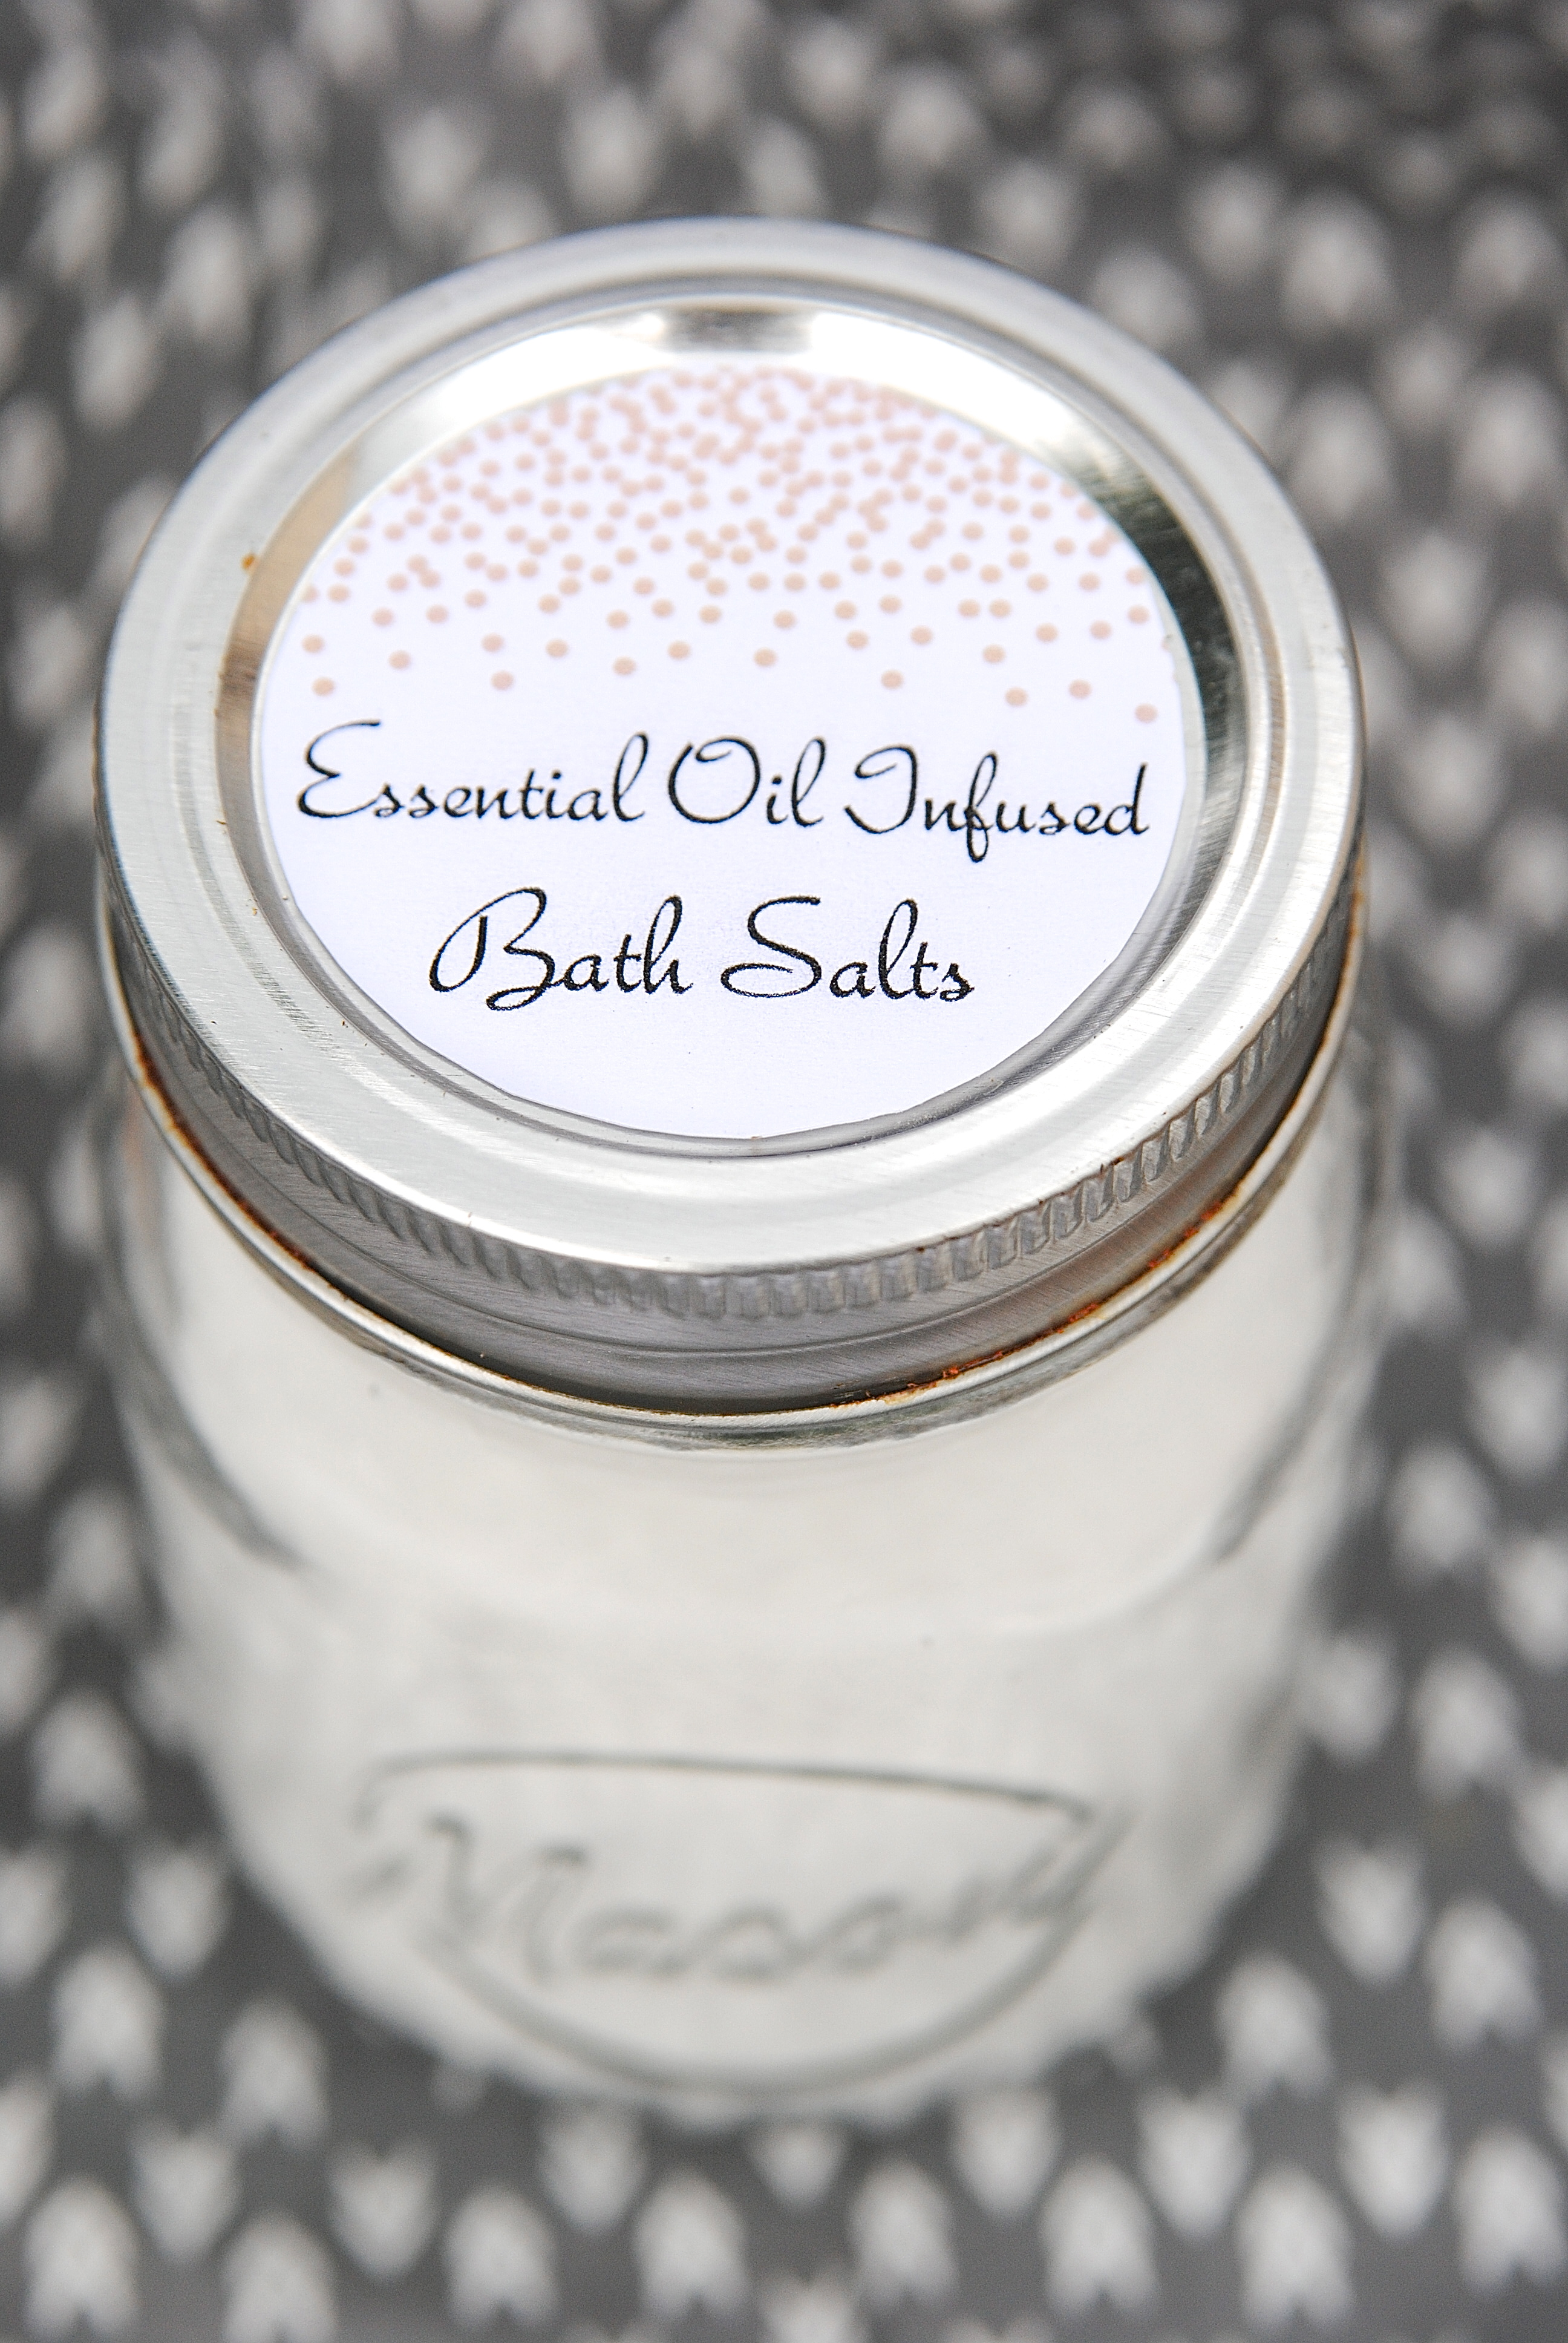 DIY Mothers Day Gift Idea With Free Printable Labels